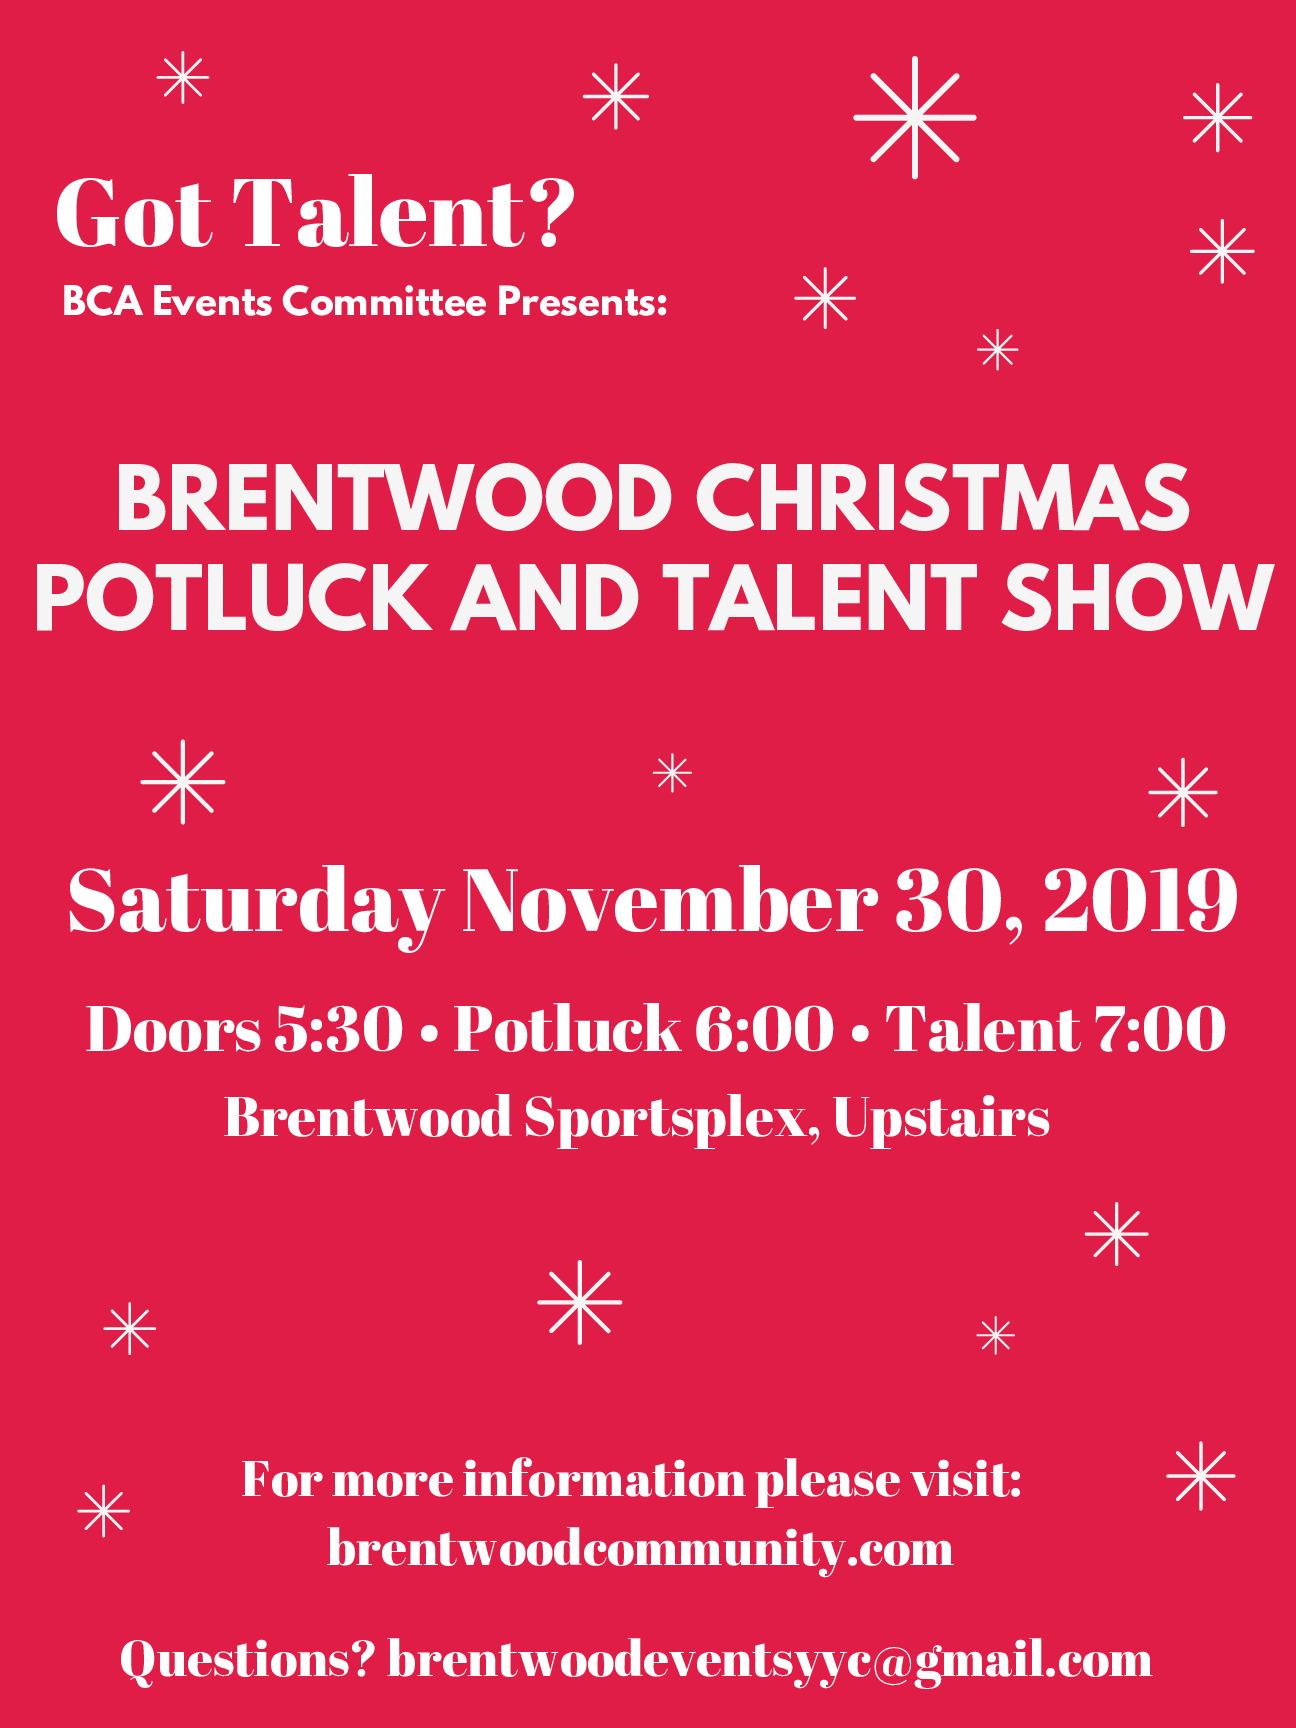 BCA Christmas Potluck and Talent Show